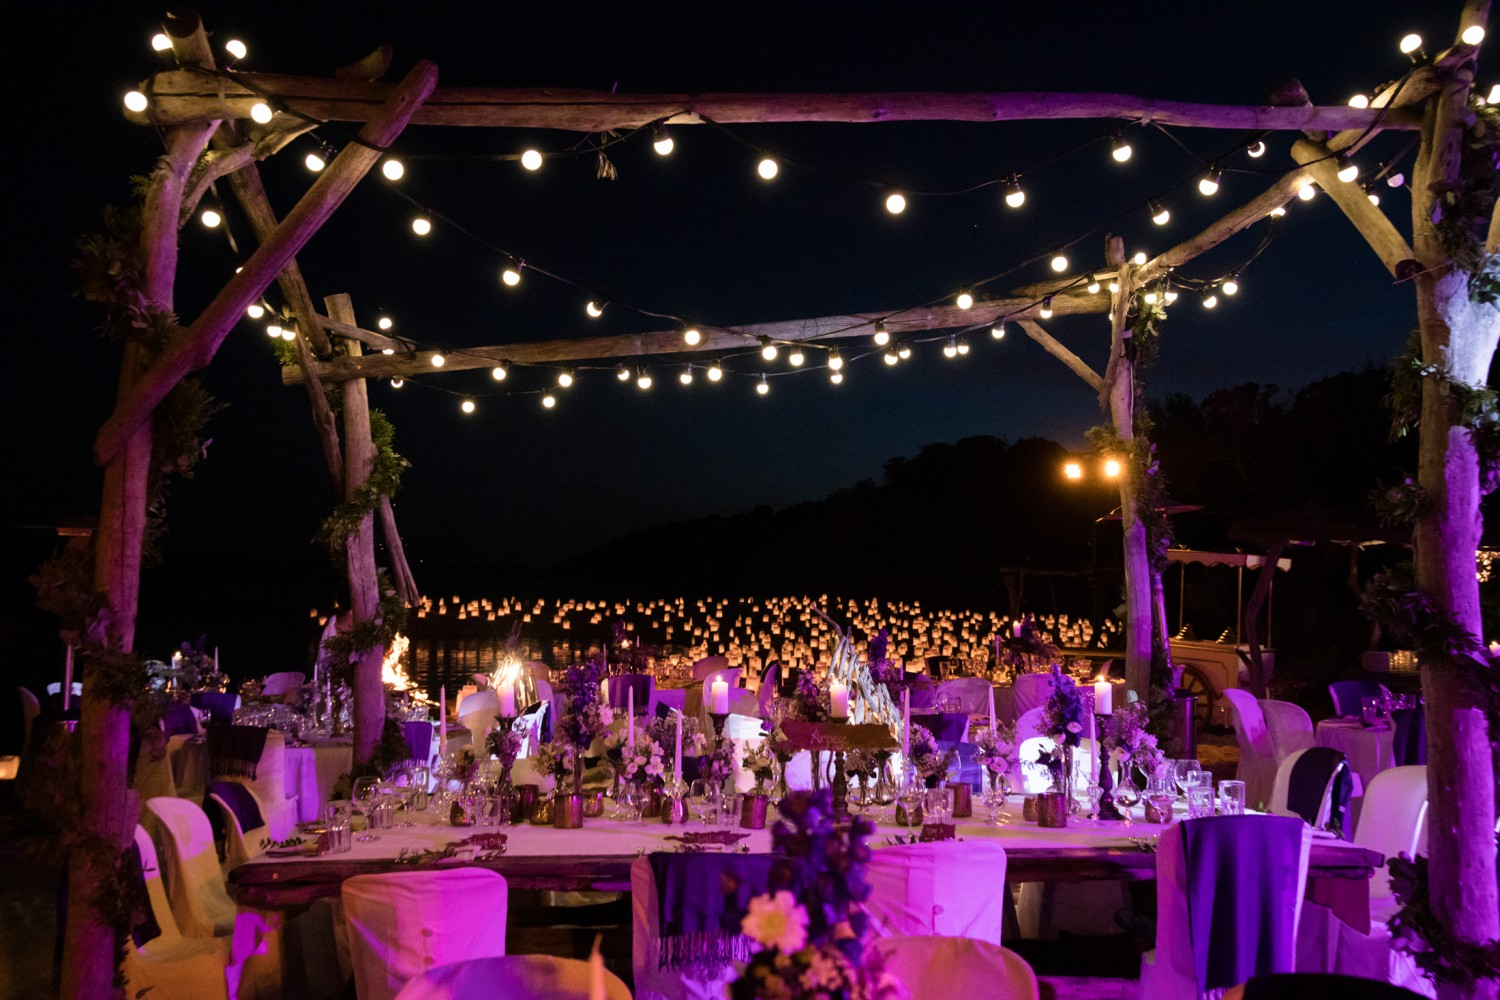 Littleton-Rose-Destination-Wedding-Planner-Corsica-Justine-and-Tom-Dinner-under-the-stars-France.jpg